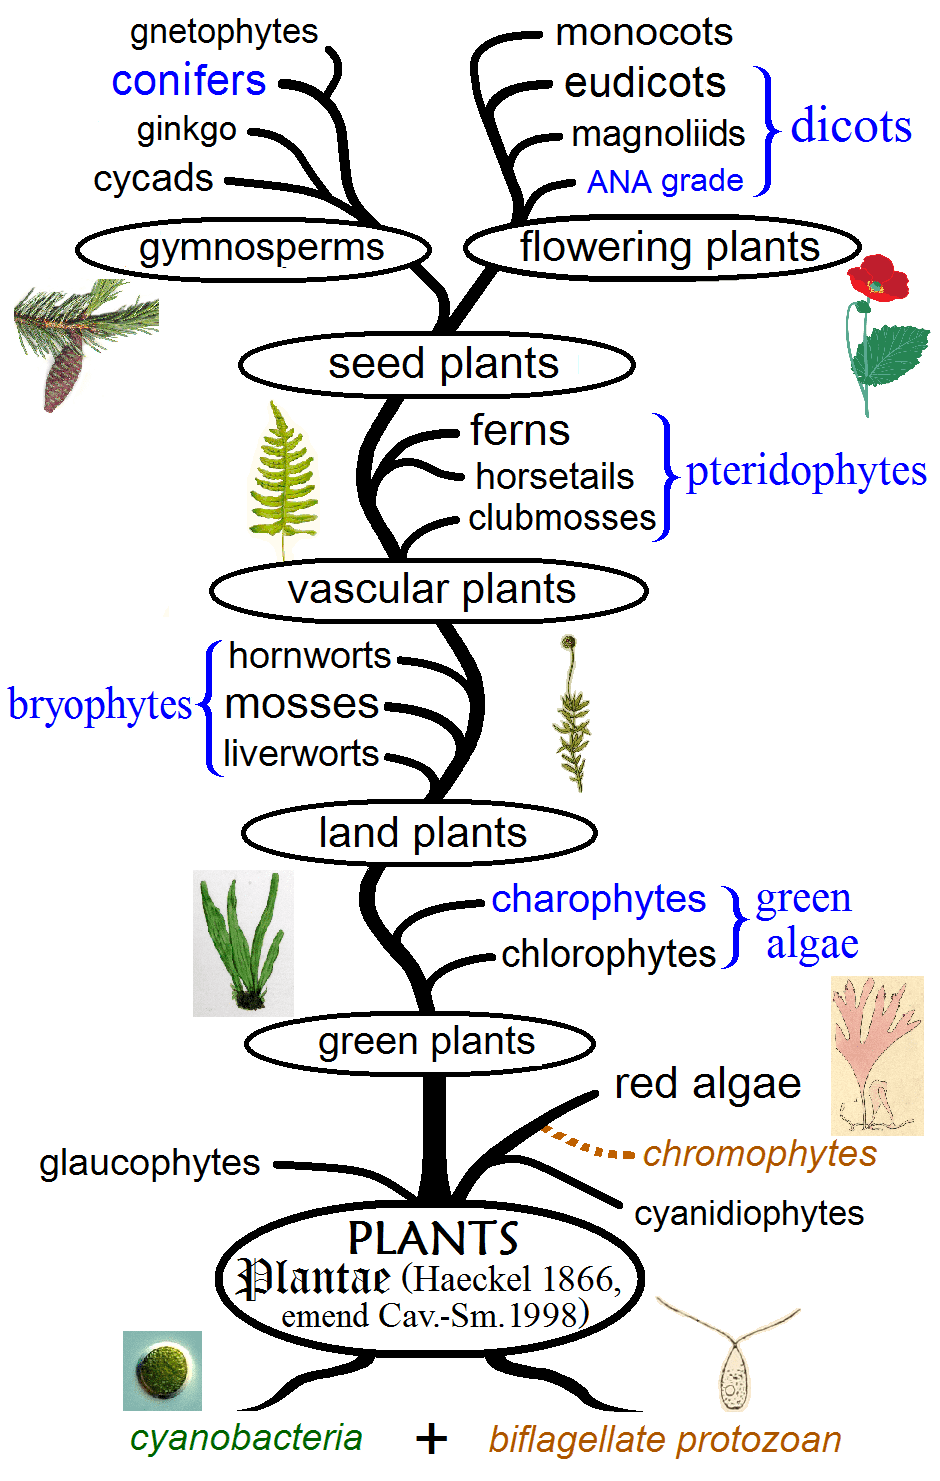 hight resolution of the different types of plants represented in an evolutionary tree image credits maulucioni